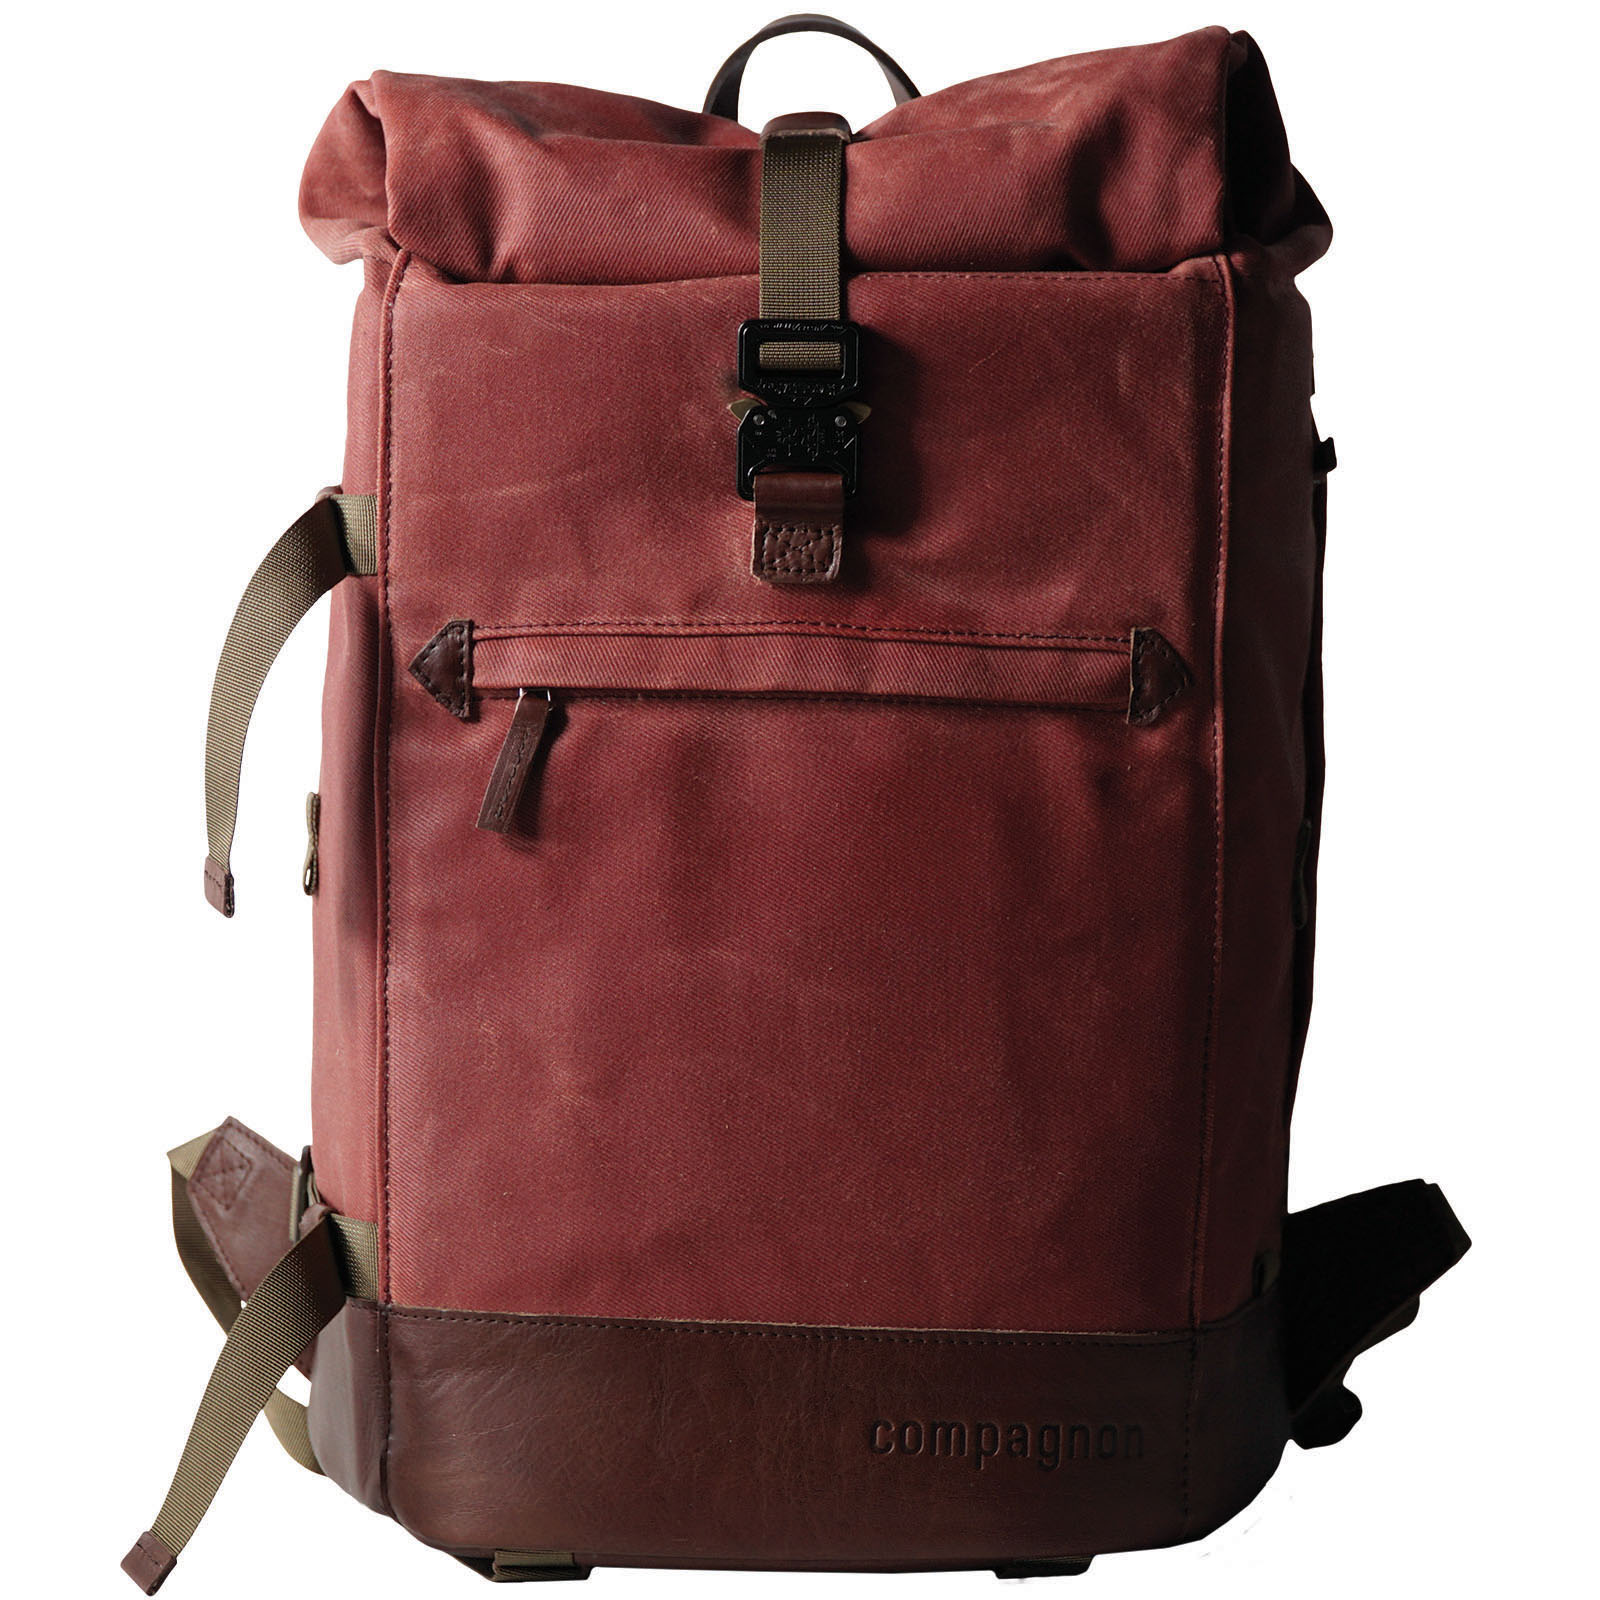 b232031fbc83 What s not to love about buying a new bag to schlep your gear  Check out